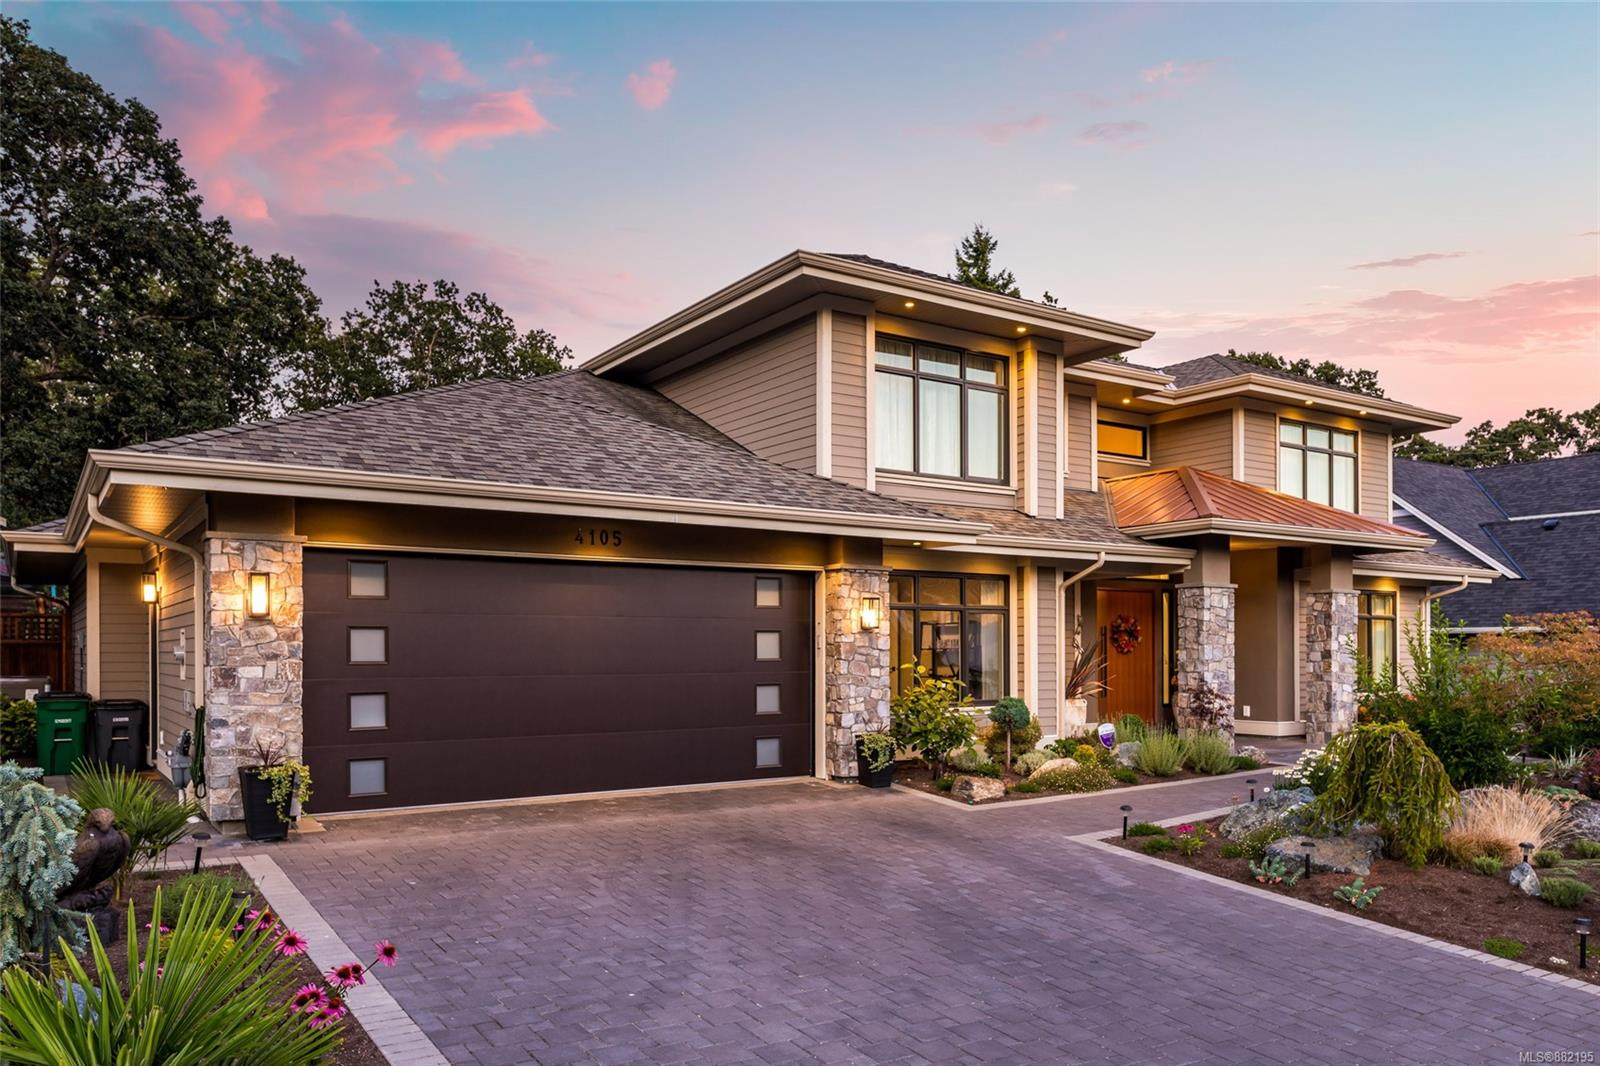 Completed in 2018 by award-winning Pacific Concept Developments, this finely crafted, custom-built home offers 4 bedrooms & 4 bathrooms with a thoughtful family-friendly layout. Even the most discerning buyer is sure to appreciate the attention to detail with exceptional finishings and the designer fixtures throughout the approximately 3100 sq ft. The main level features a spectacular entrance, powder room, family room, open concept living & dining room with high ceilings, an office/bedroom, a laundry room & a beautiful chef's kitchen. The bright master suite has a spacious walk-in closet and a gorgeous 5-piece Ensuite & a fireplace. The upper level features 2 more bedrooms, a 4-piece bath with a skylight&  a 3-piece bath. The fully fenced backyard offers privacy & low-maintenance landscaping including two walkout patios, a pergola, built-in BBQ & irrigation. Located in a beautiful new subdivision, Mount Douglas Estates, close to parks, shopping & just outside downtown Victoria.